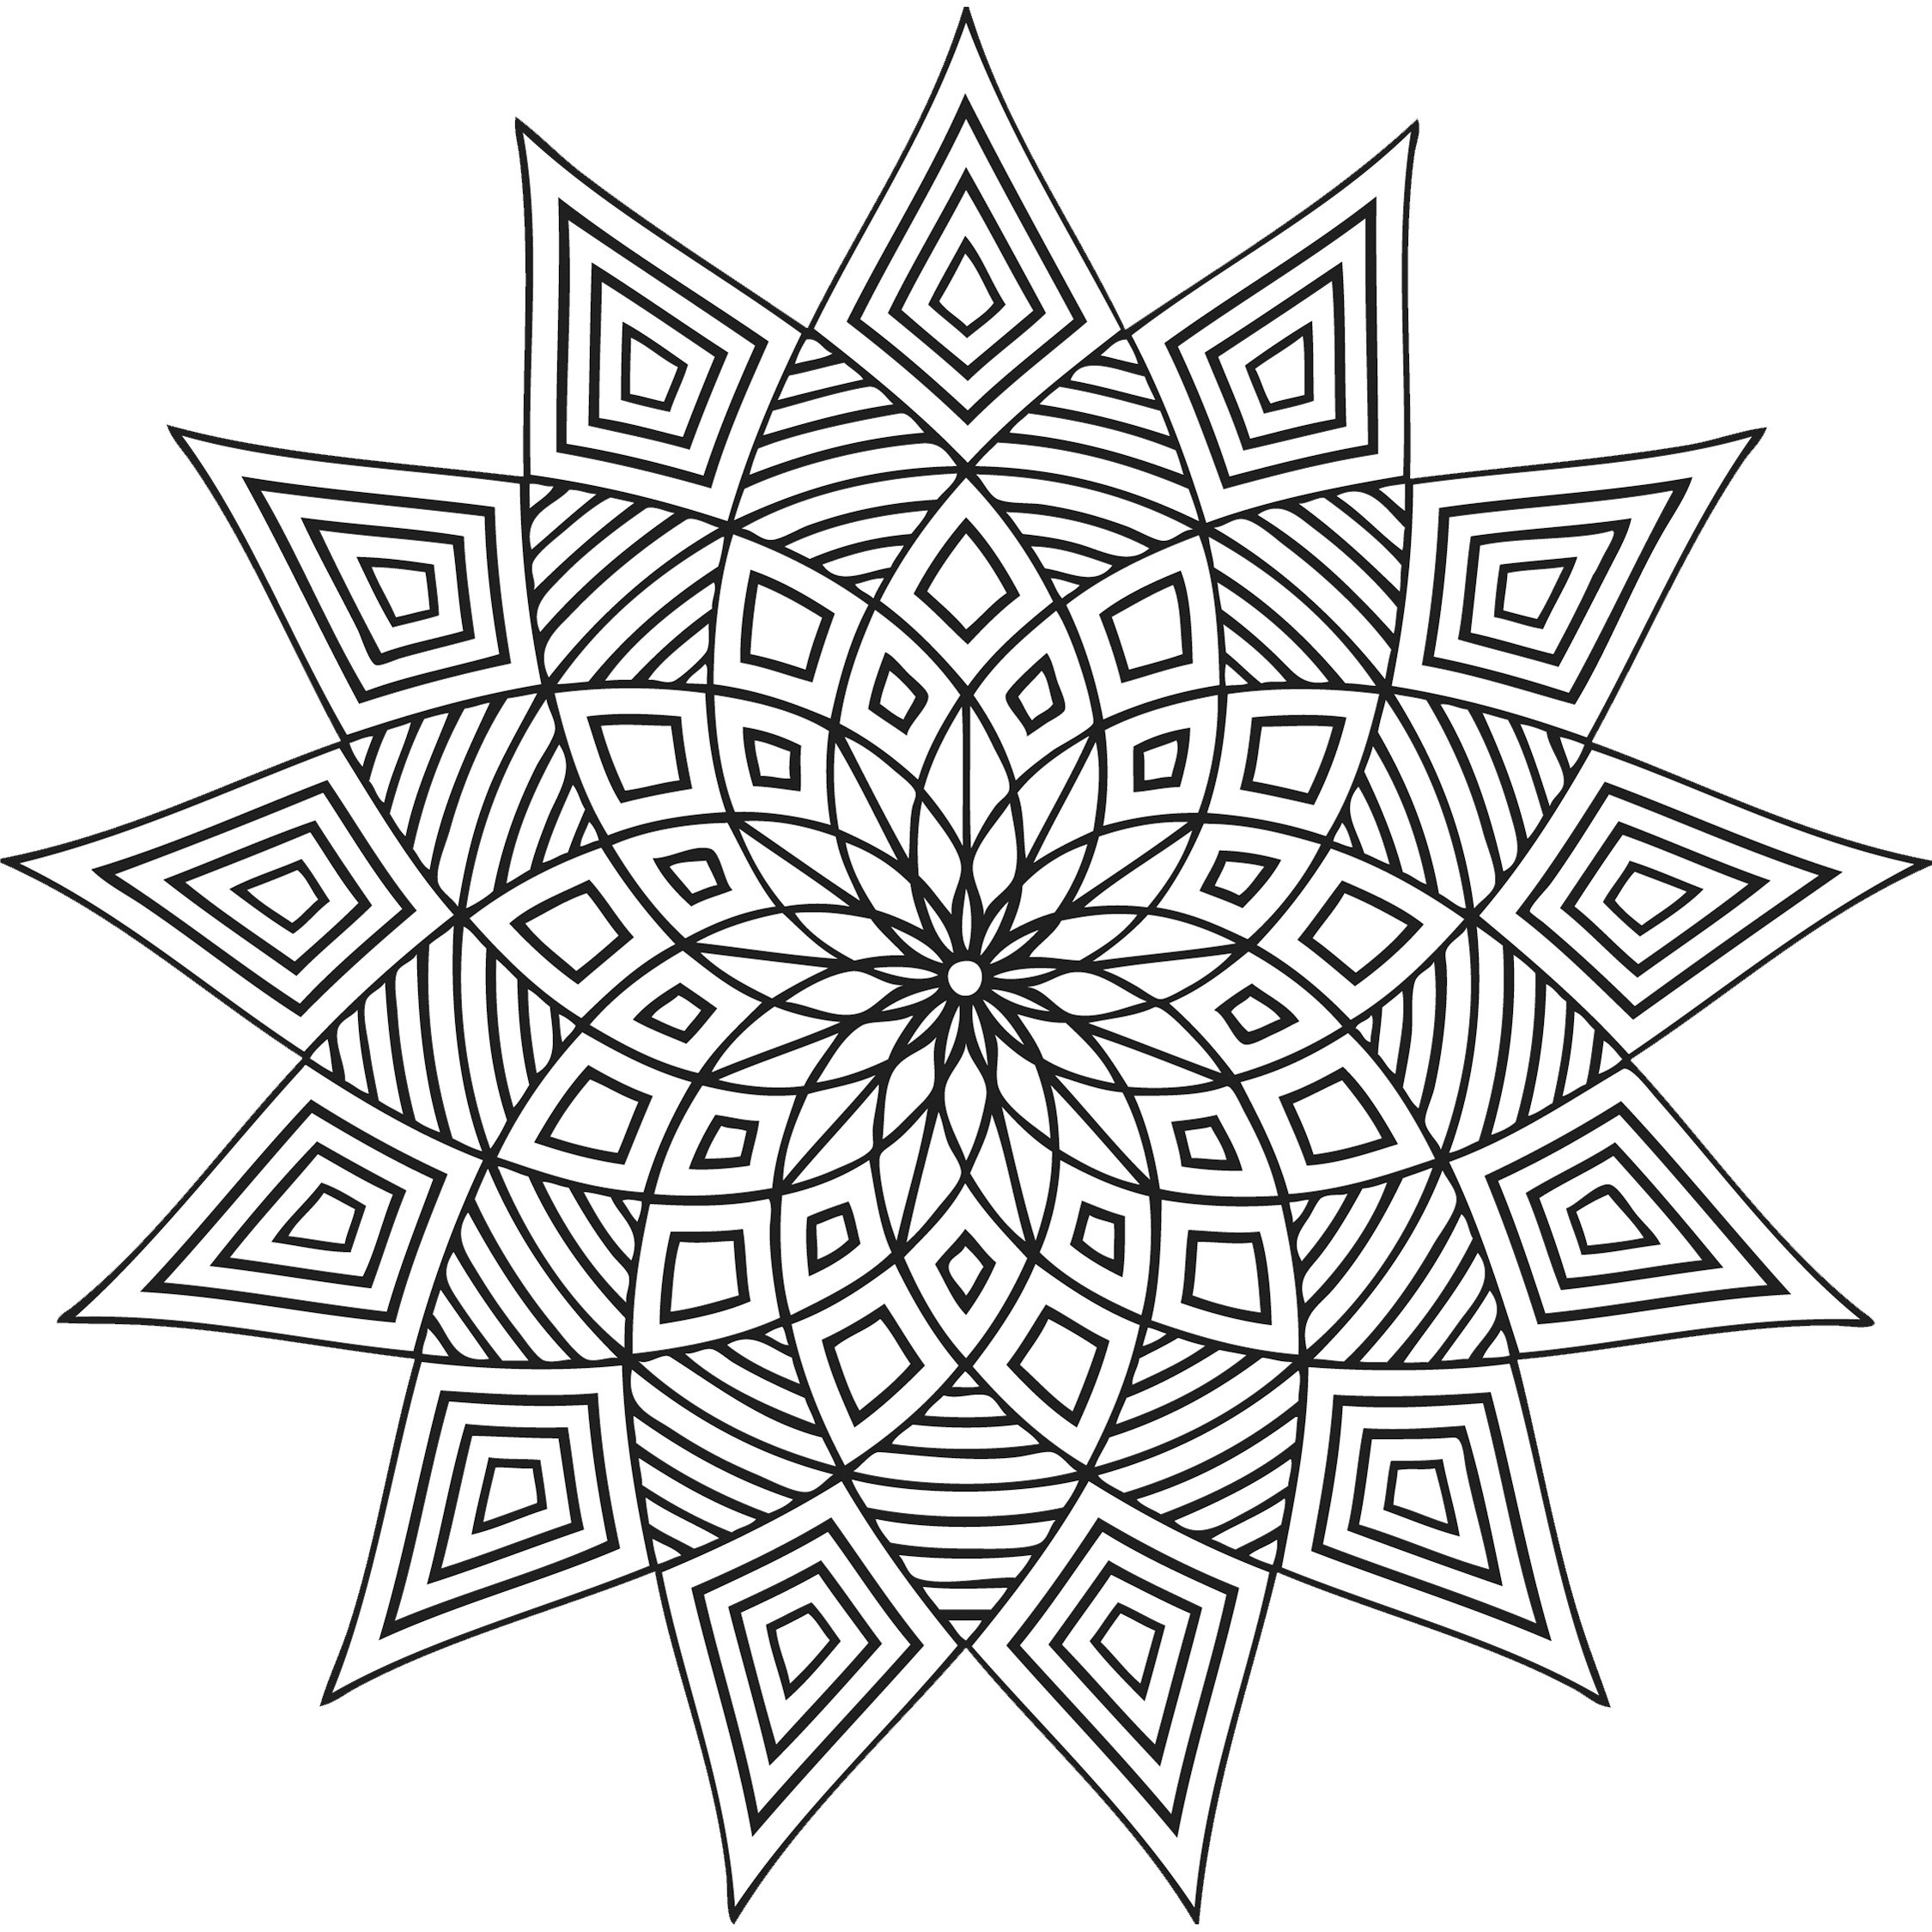 Design Coloring Pages For Kids  Free Printable Geometric Coloring Pages For Kids